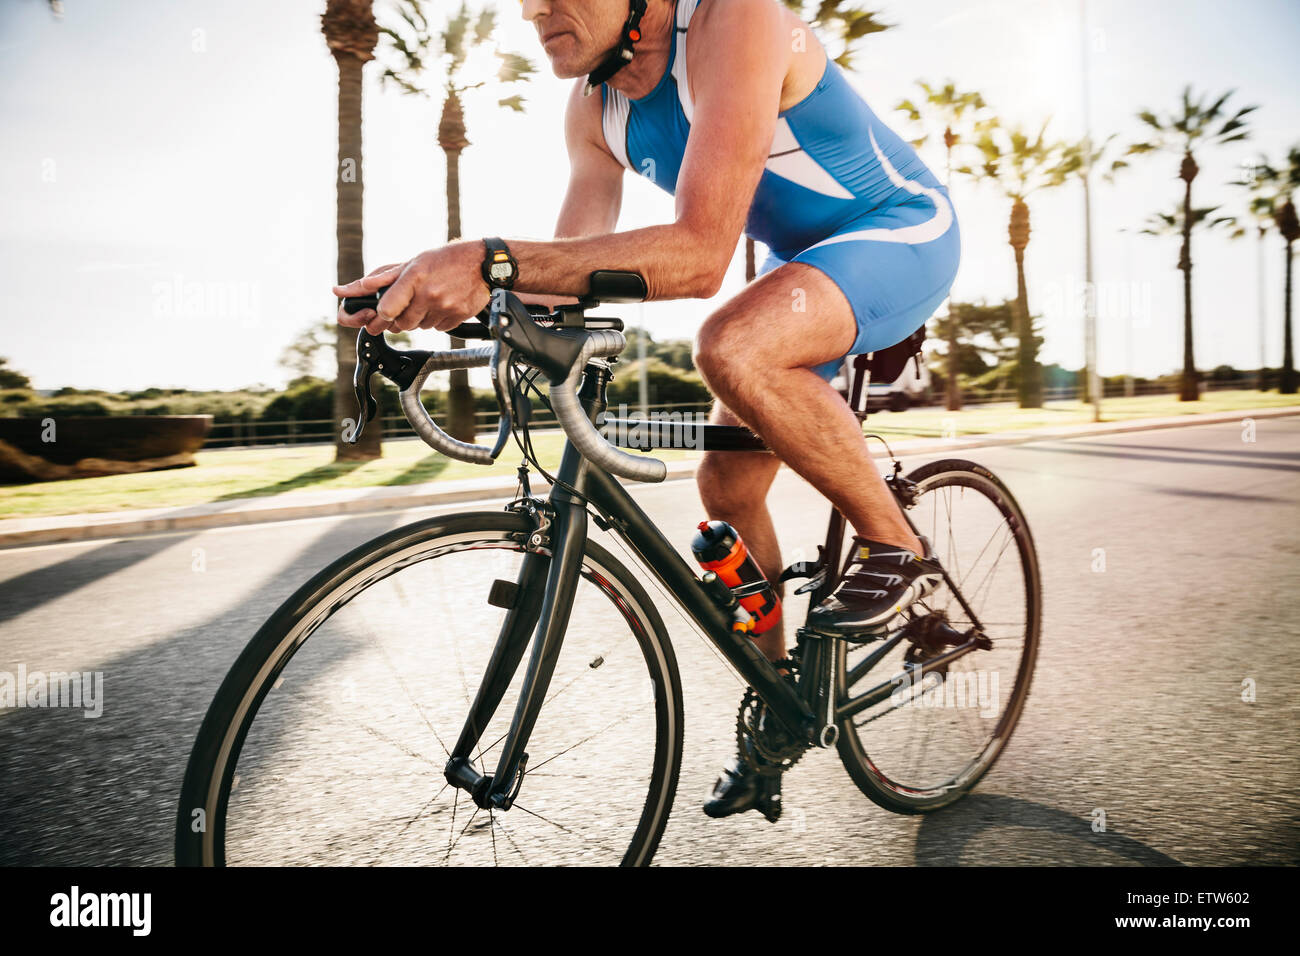 Spain, Mallorca, Sa Coma, triathlet training on bicycle - Stock Image